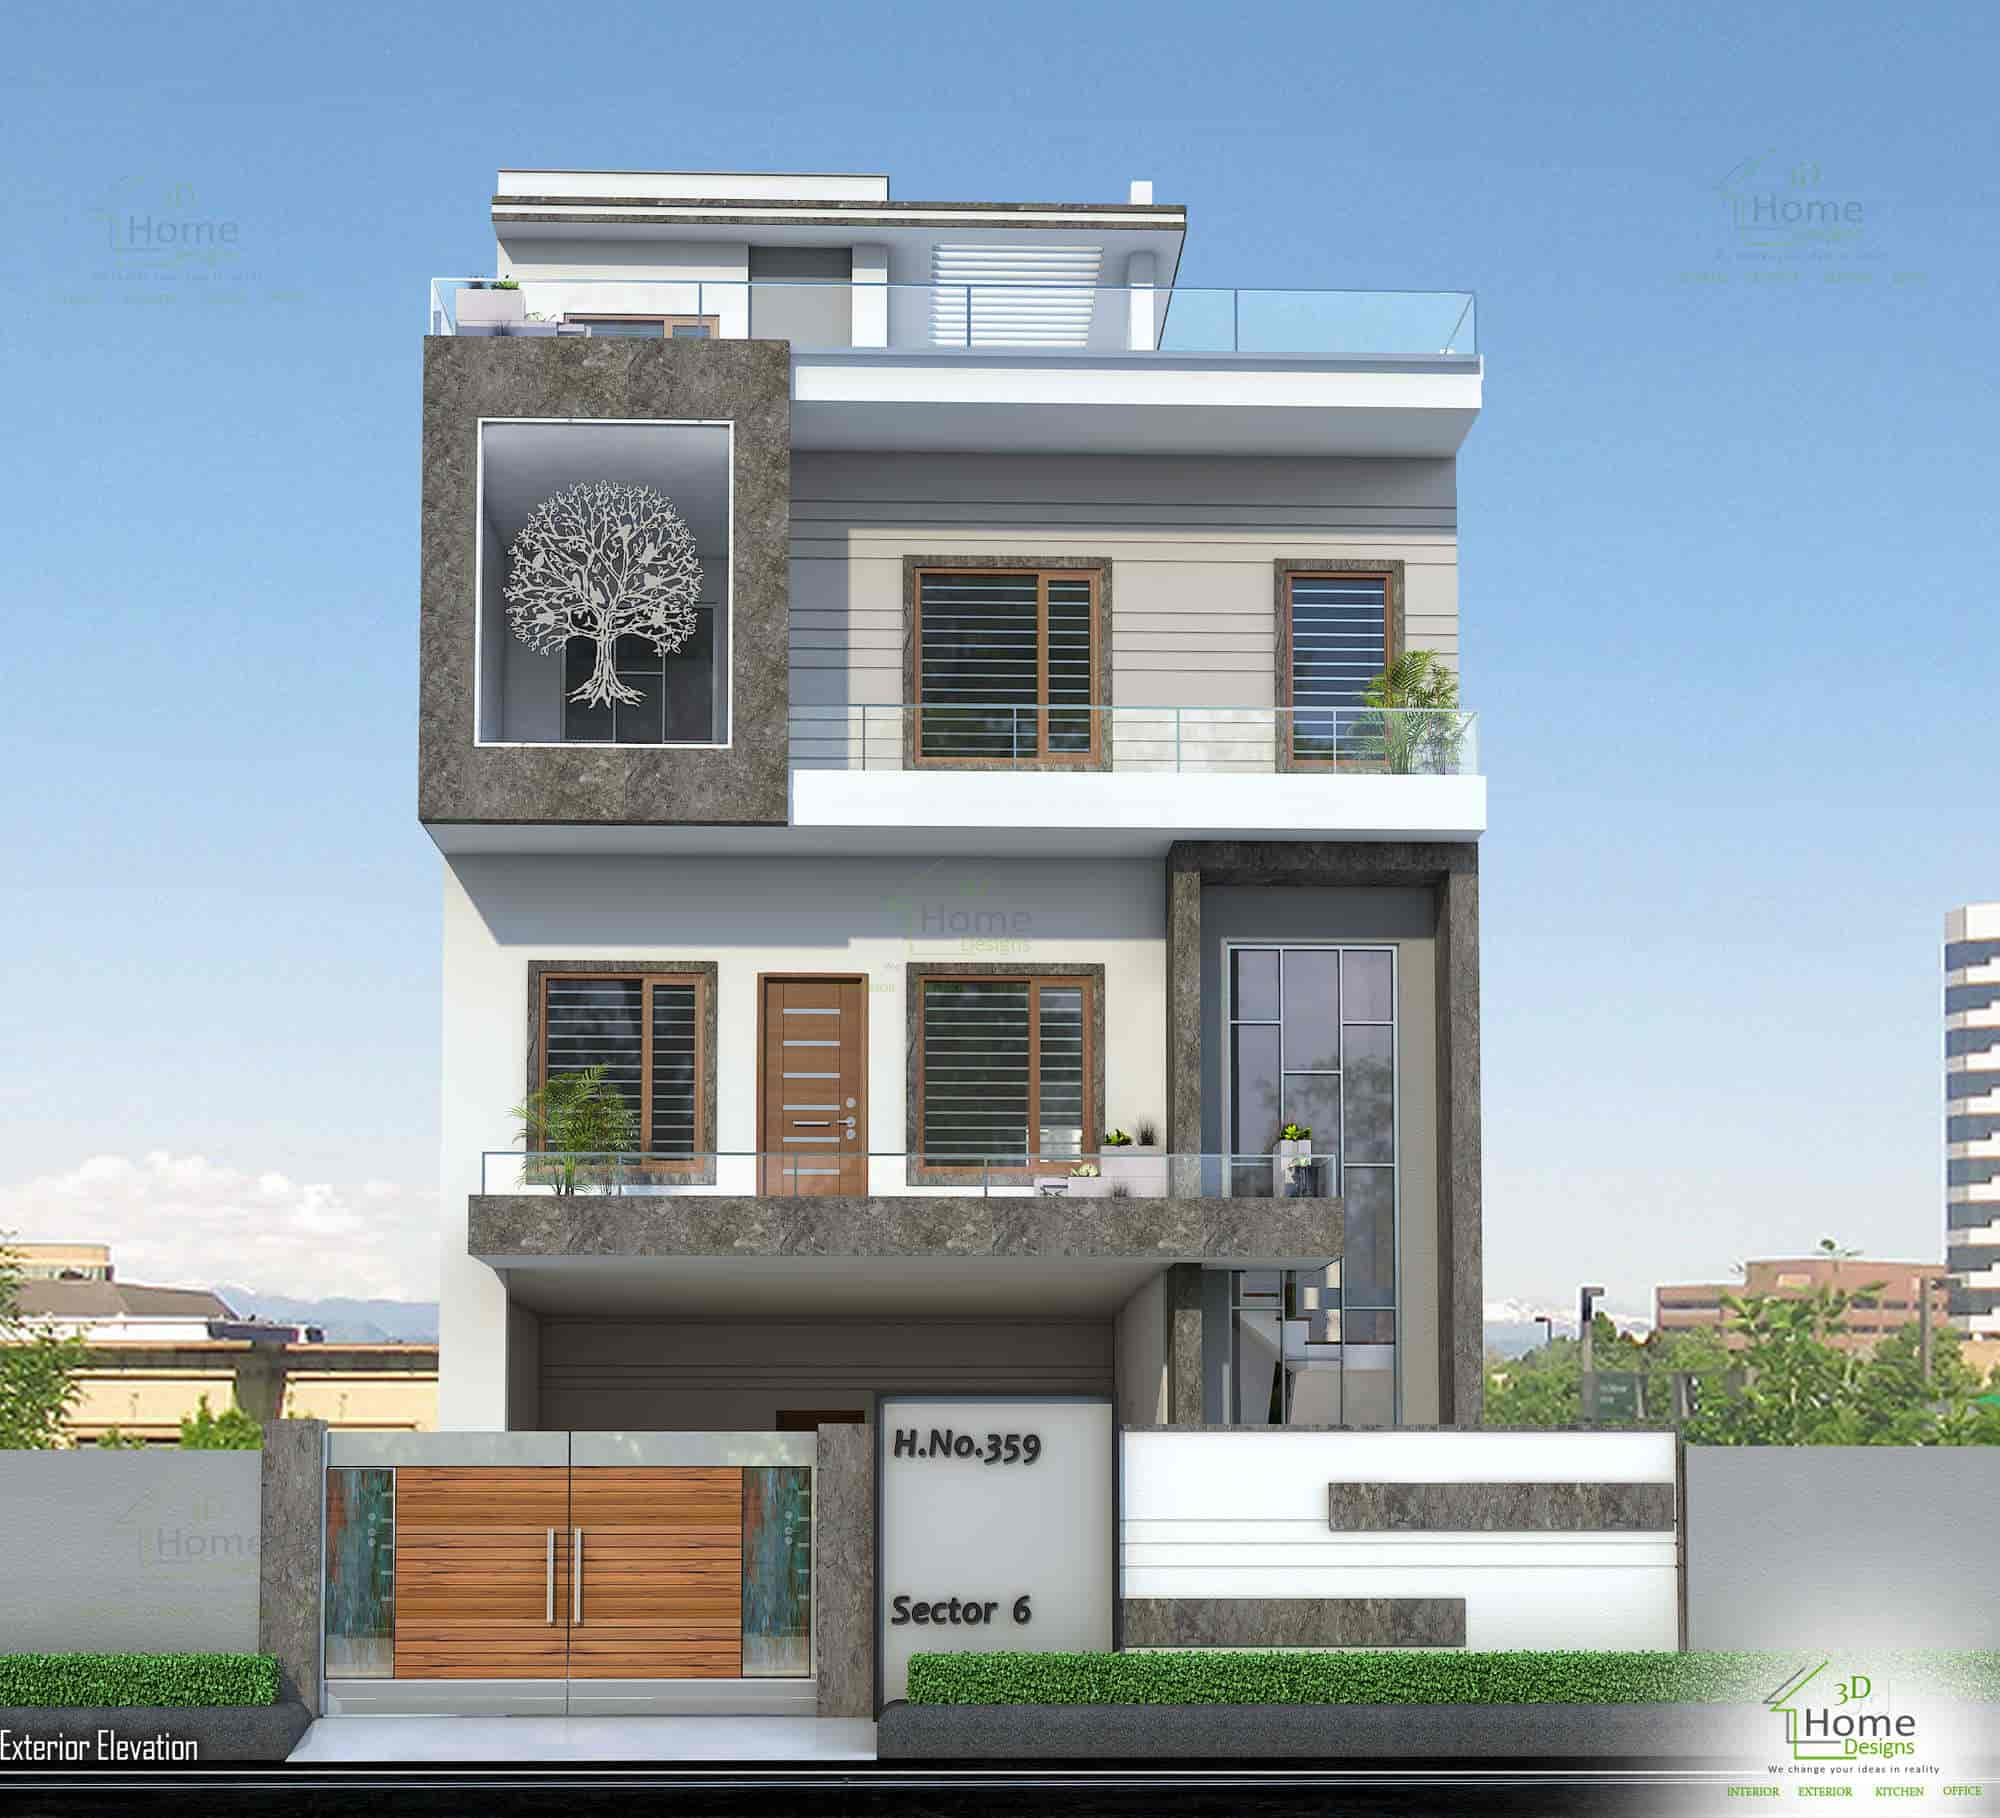 3d home designs sonipat ho architects in sonepat justdial